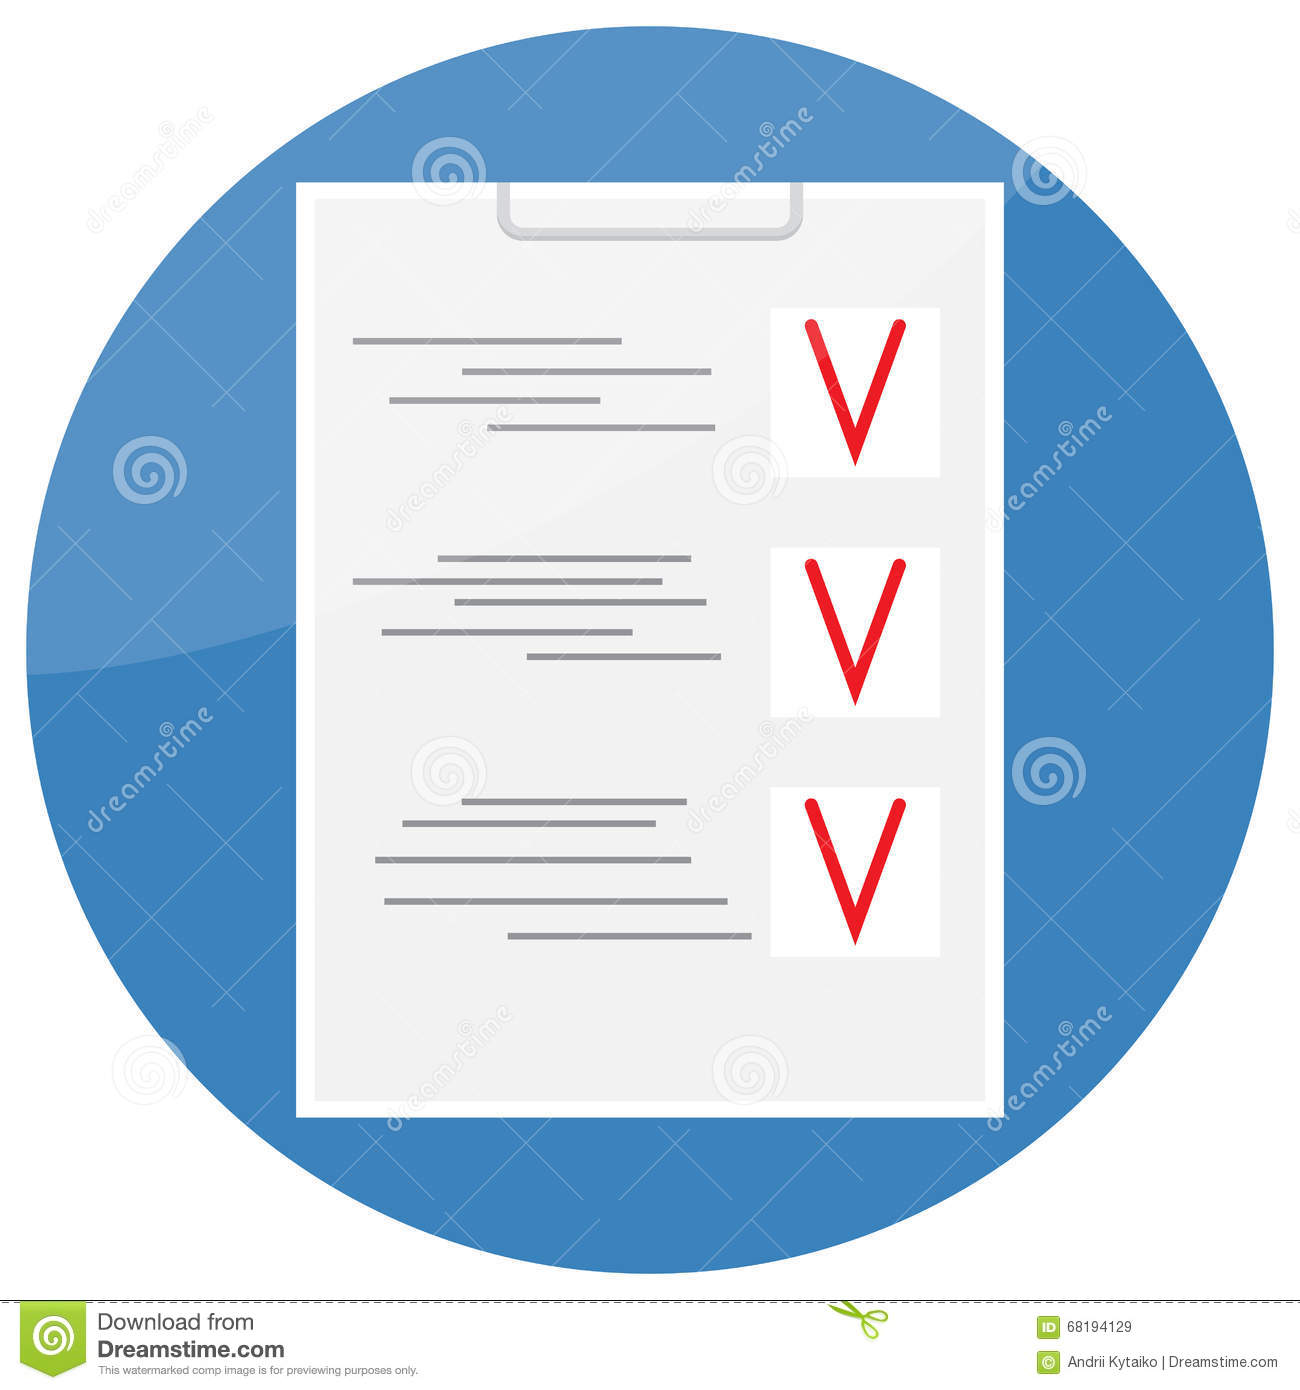 Checklist Icon Design Flat Royalty Free Stock Images